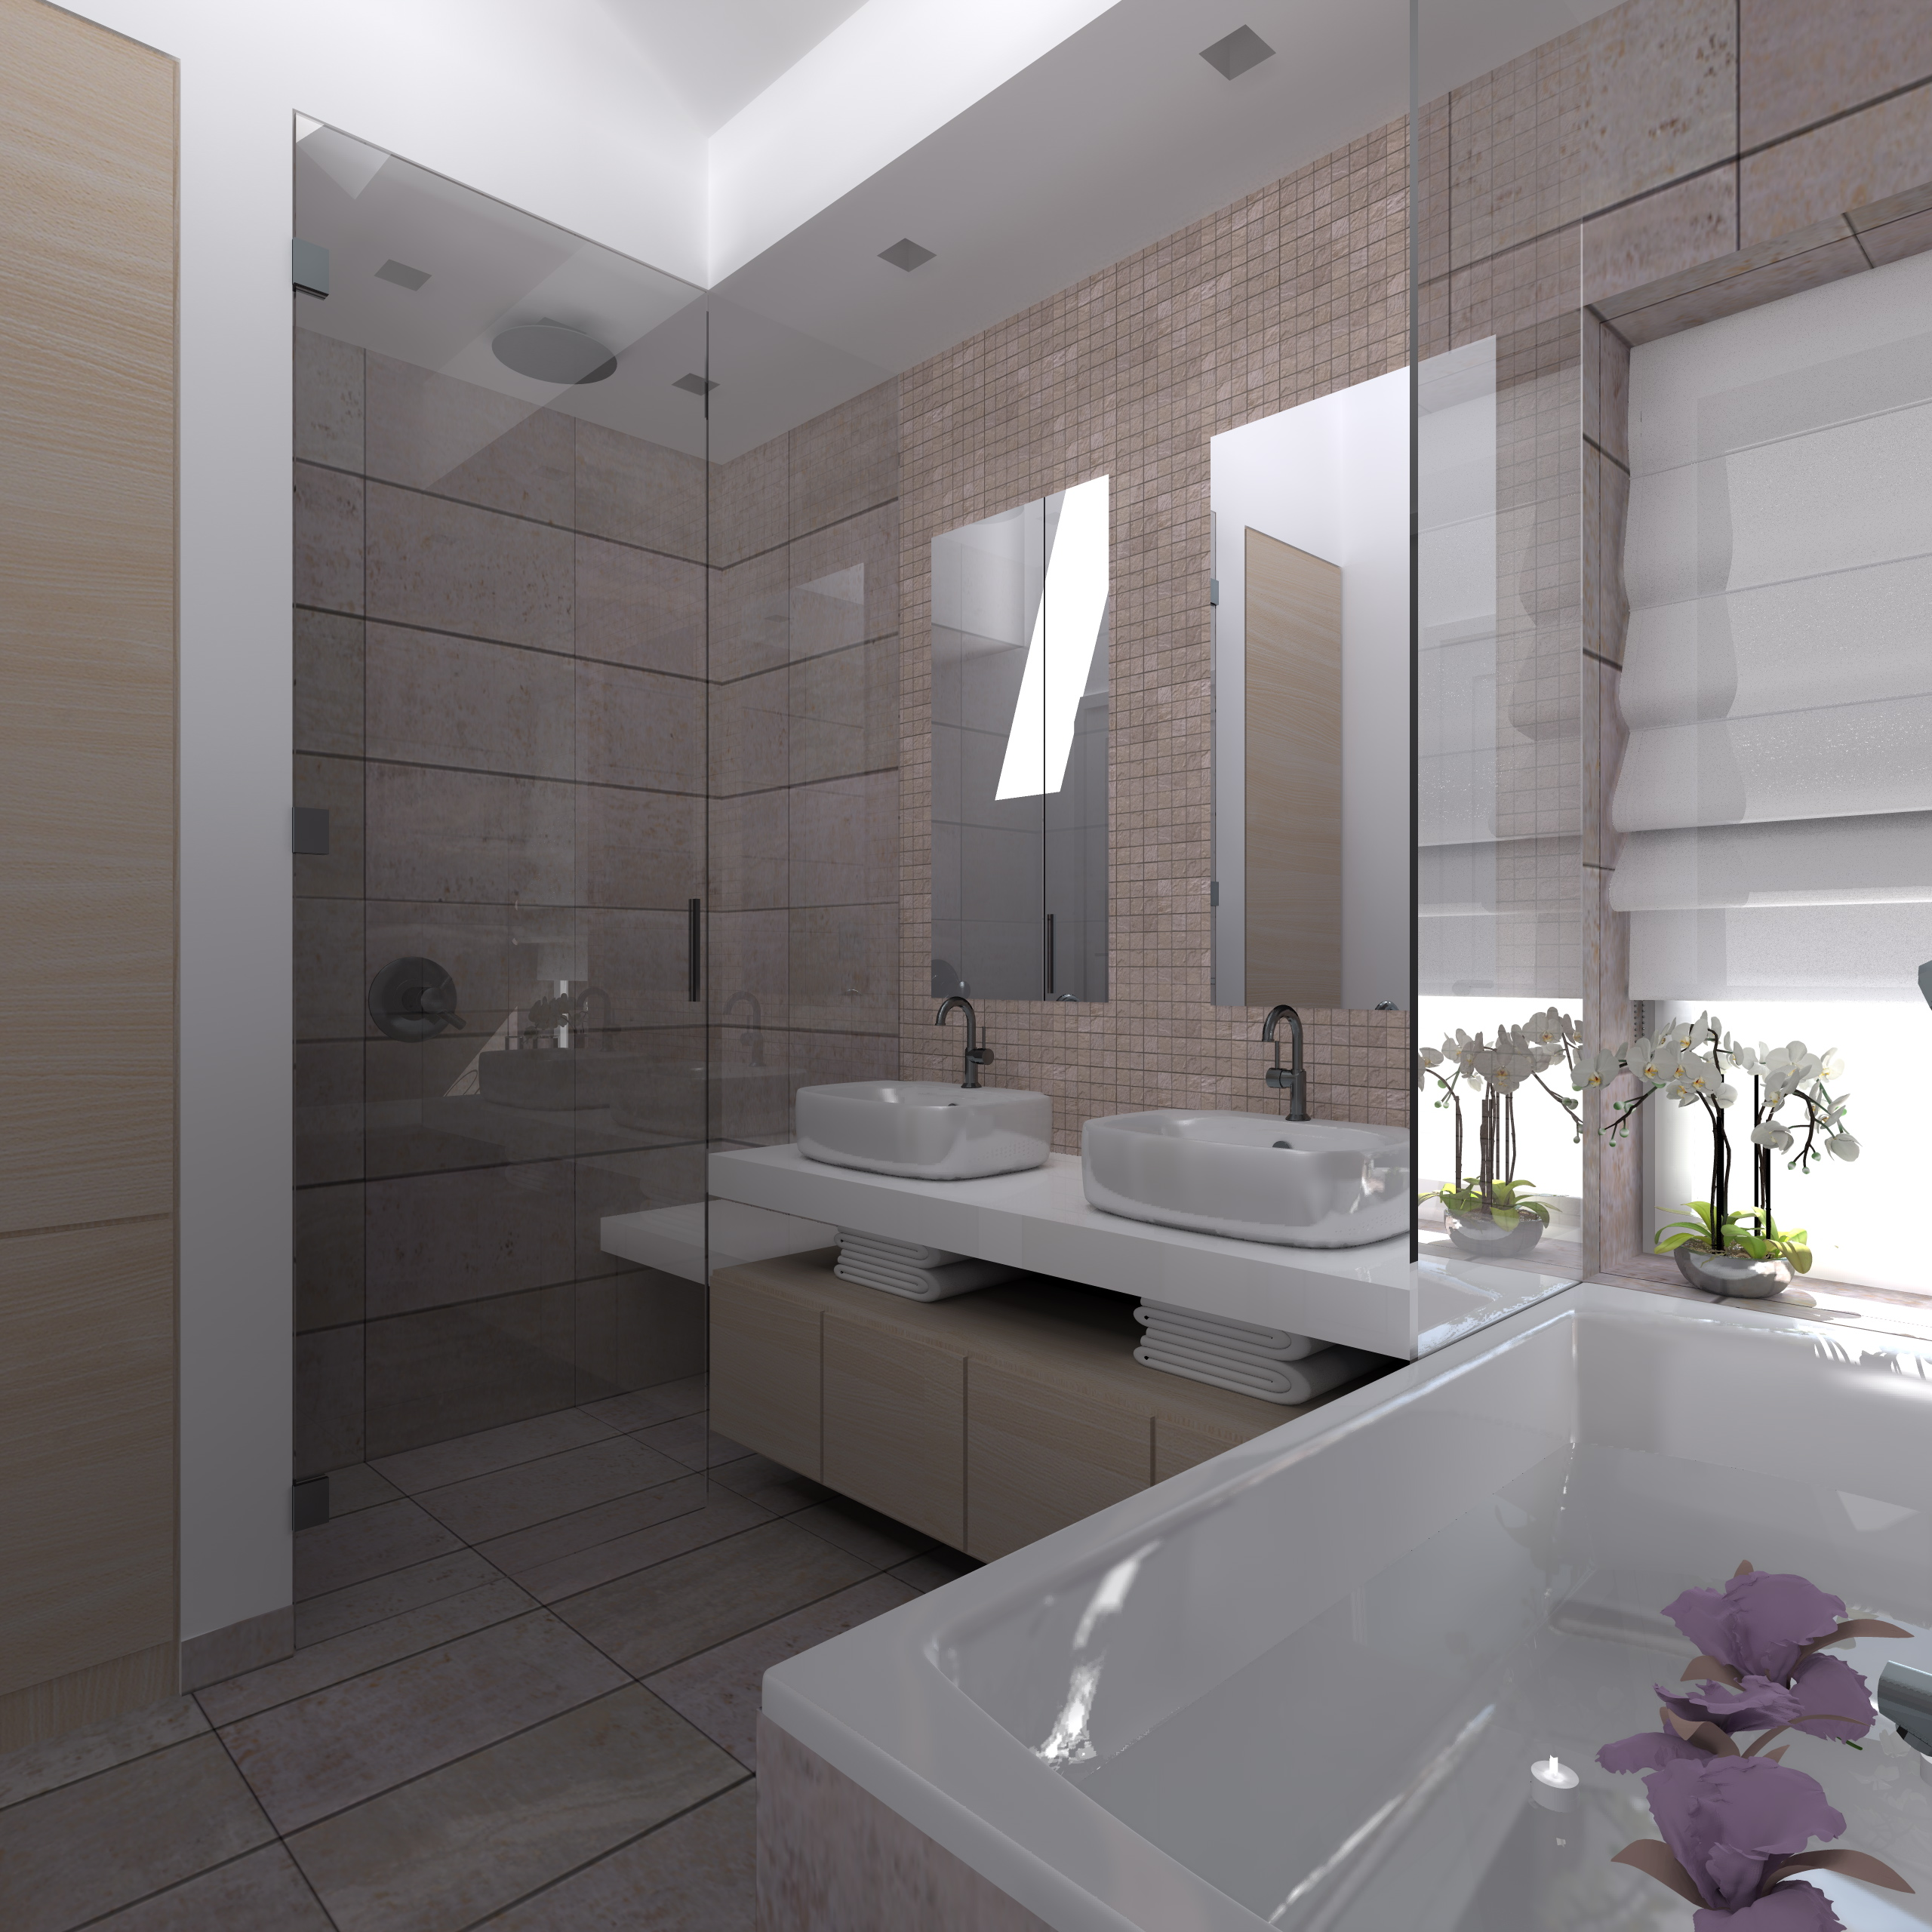 Bathroom Remodeling In Ct: ViewDesignerProject ProjectBathroom Design